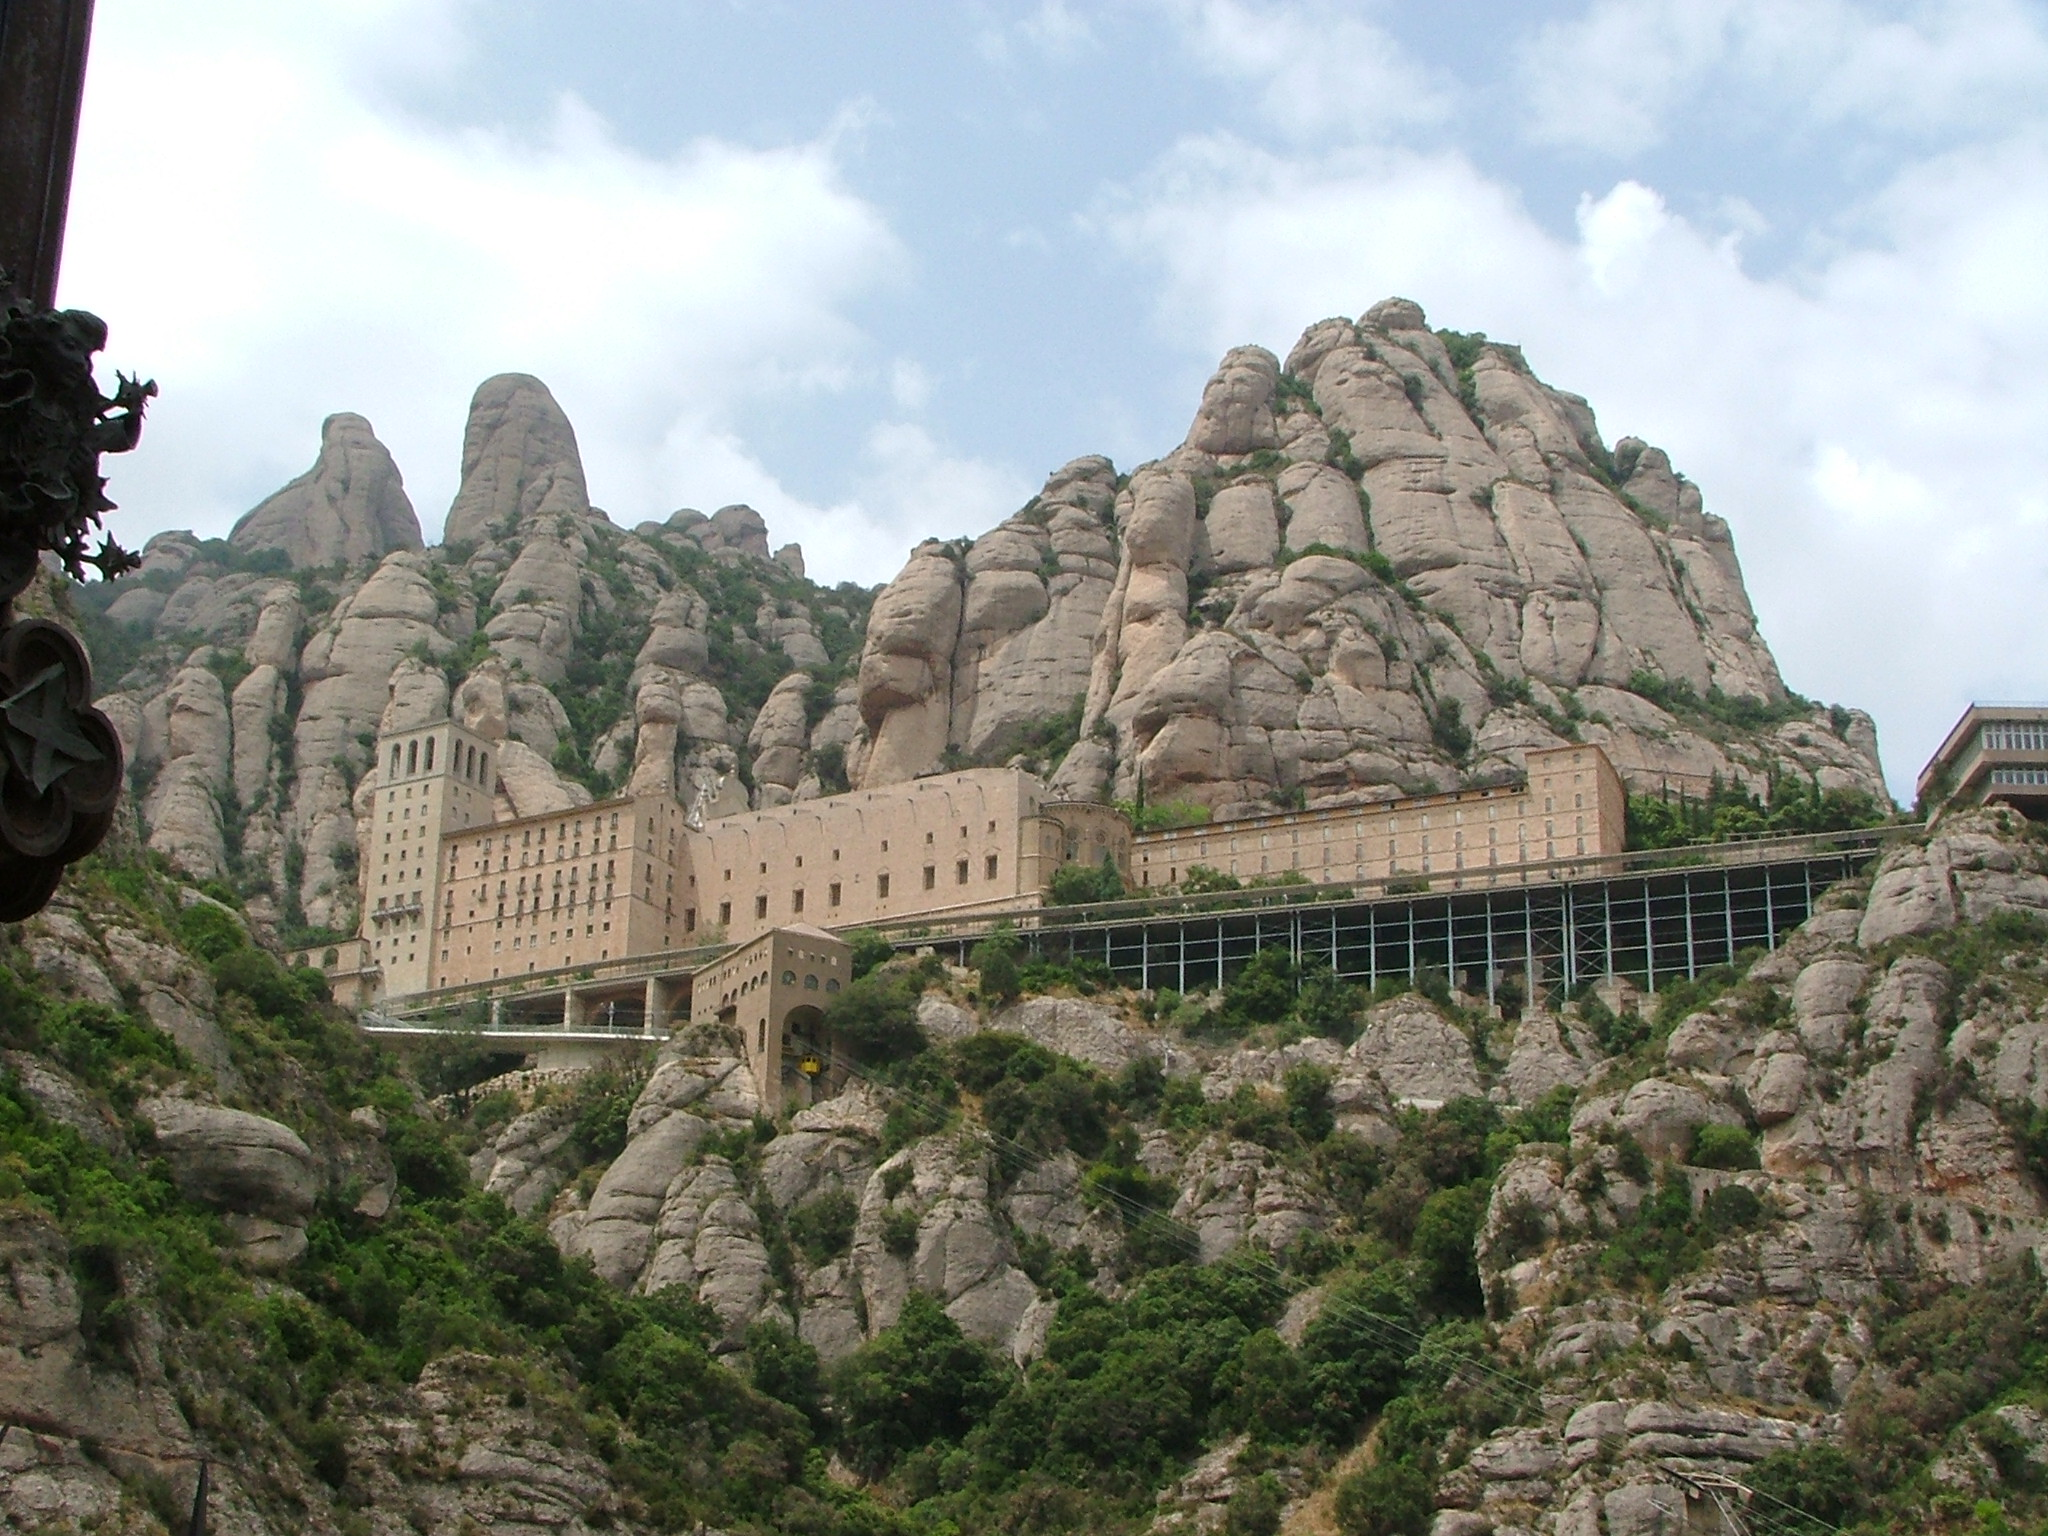 https://upload.wikimedia.org/wikipedia/commons/9/99/Montserrat_monastery3.JPG